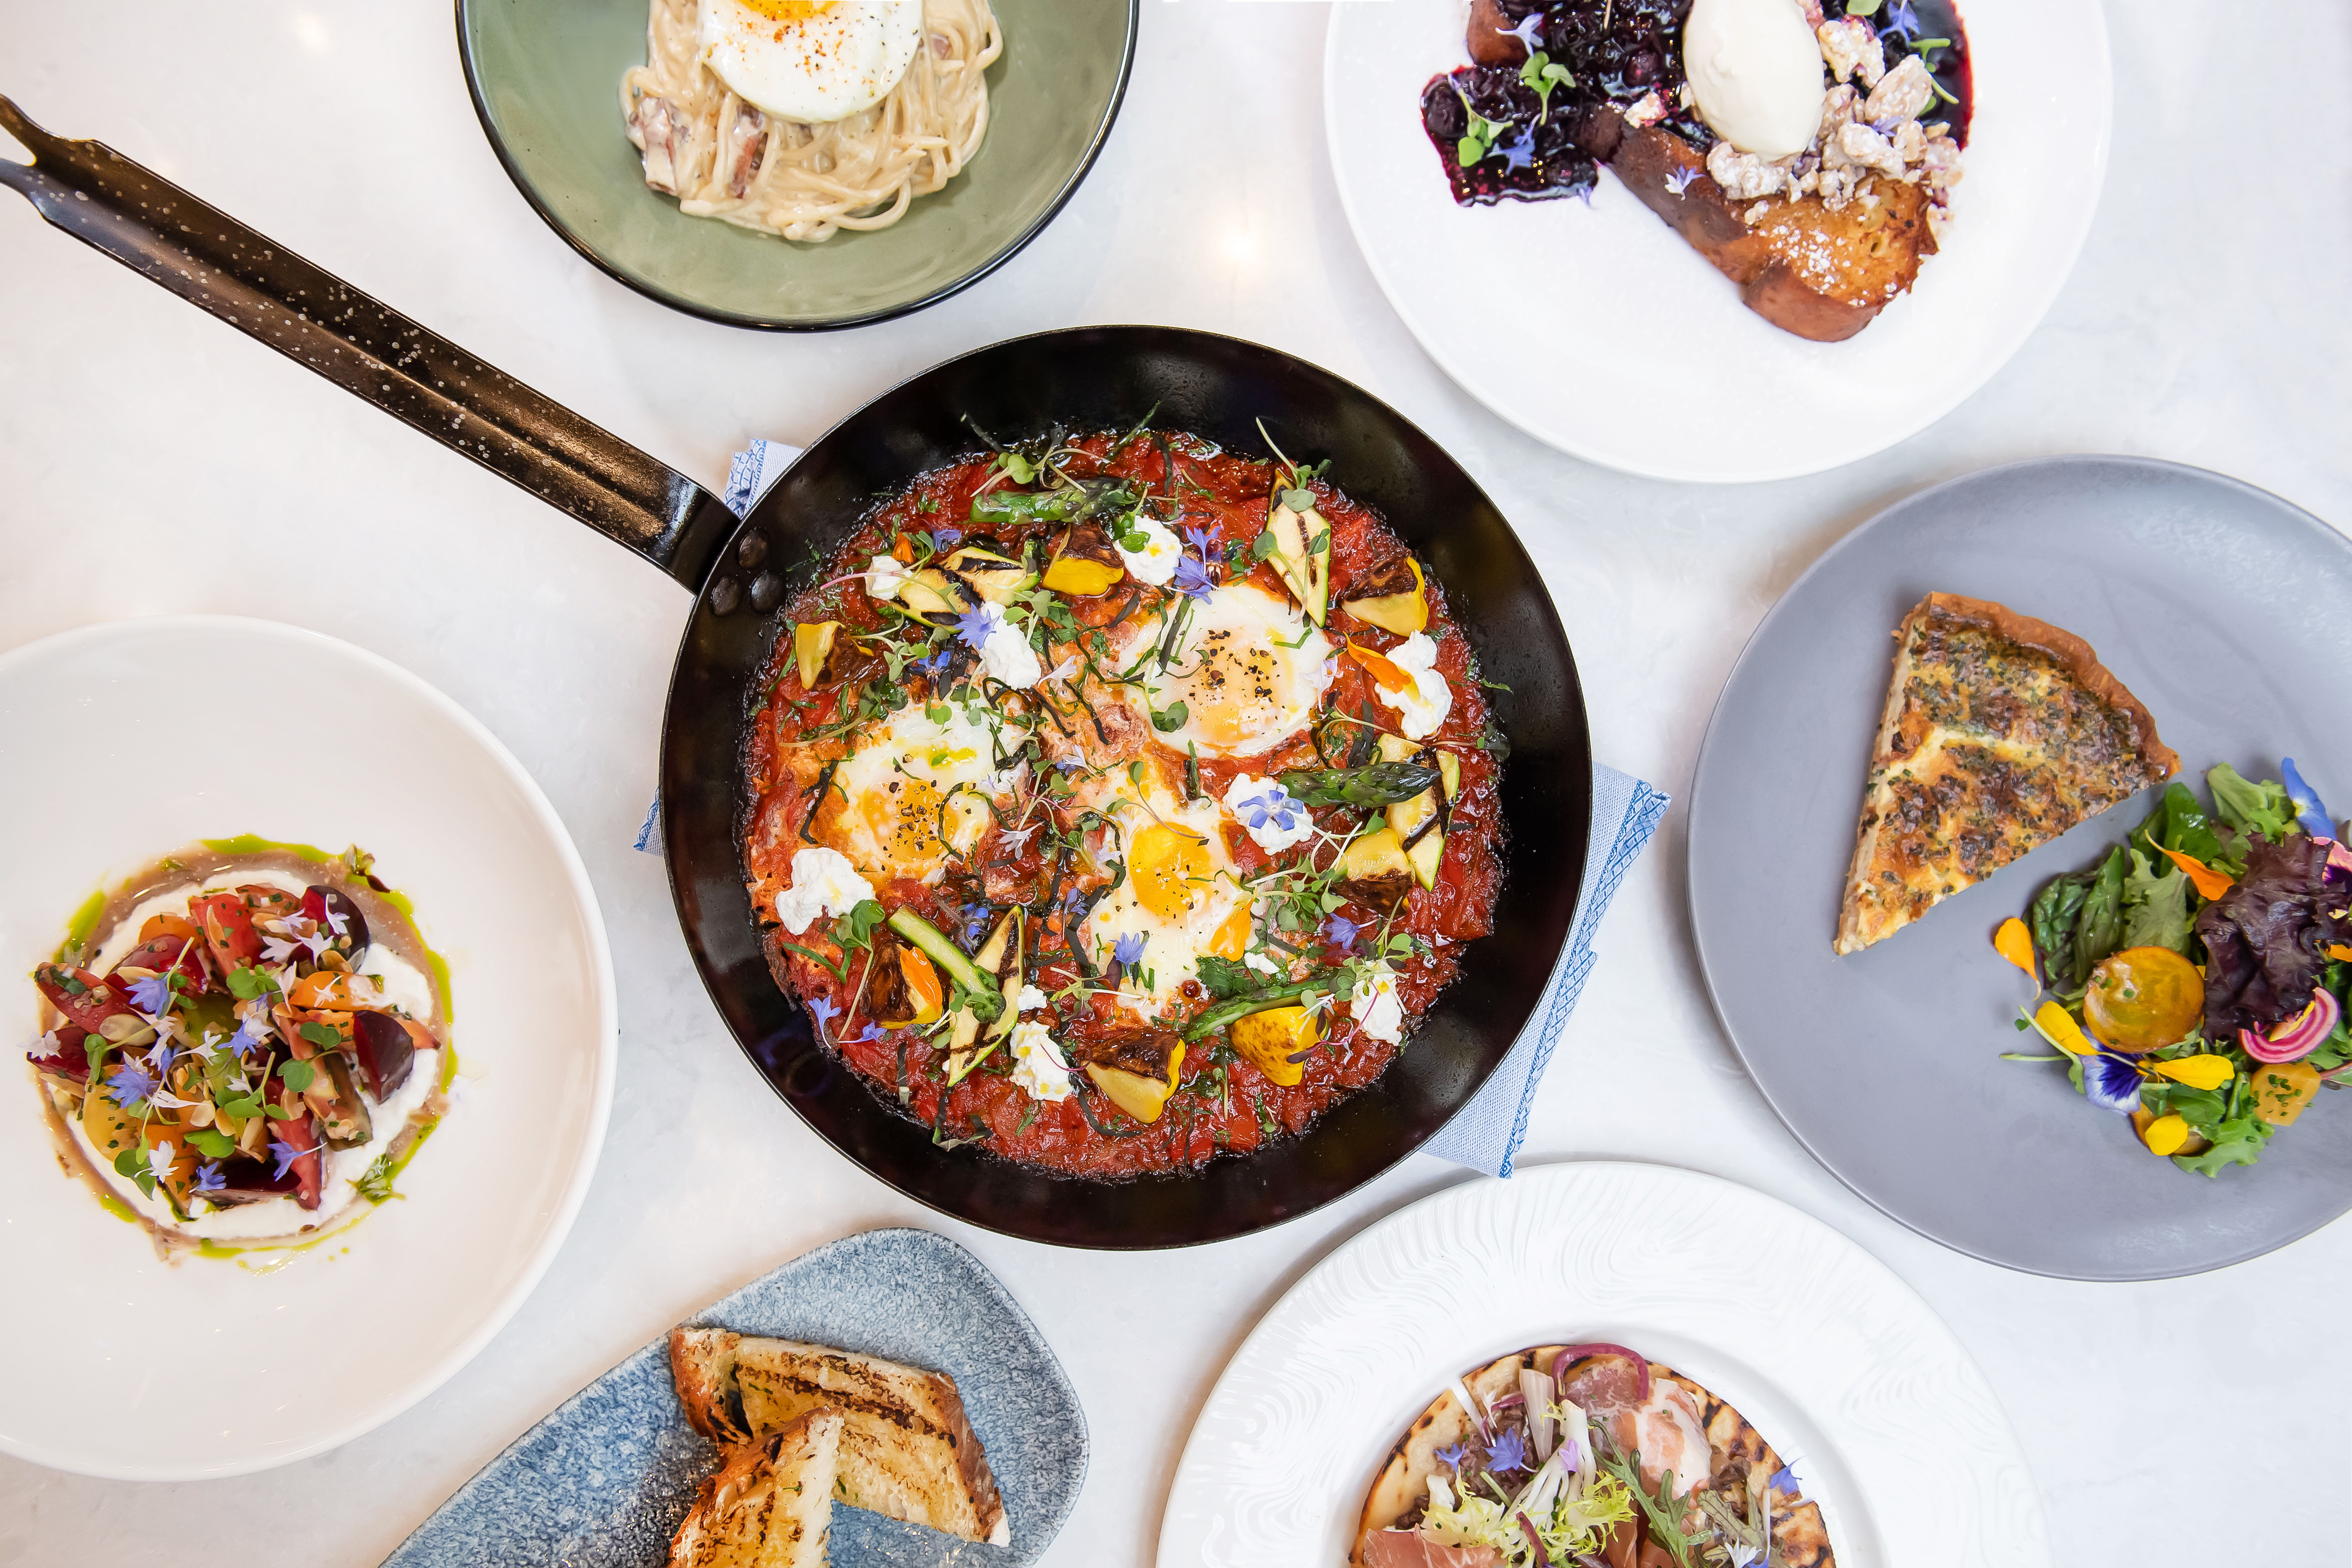 Downtown Gets a New Italian Brunch With Baked Guanciale and Eggs